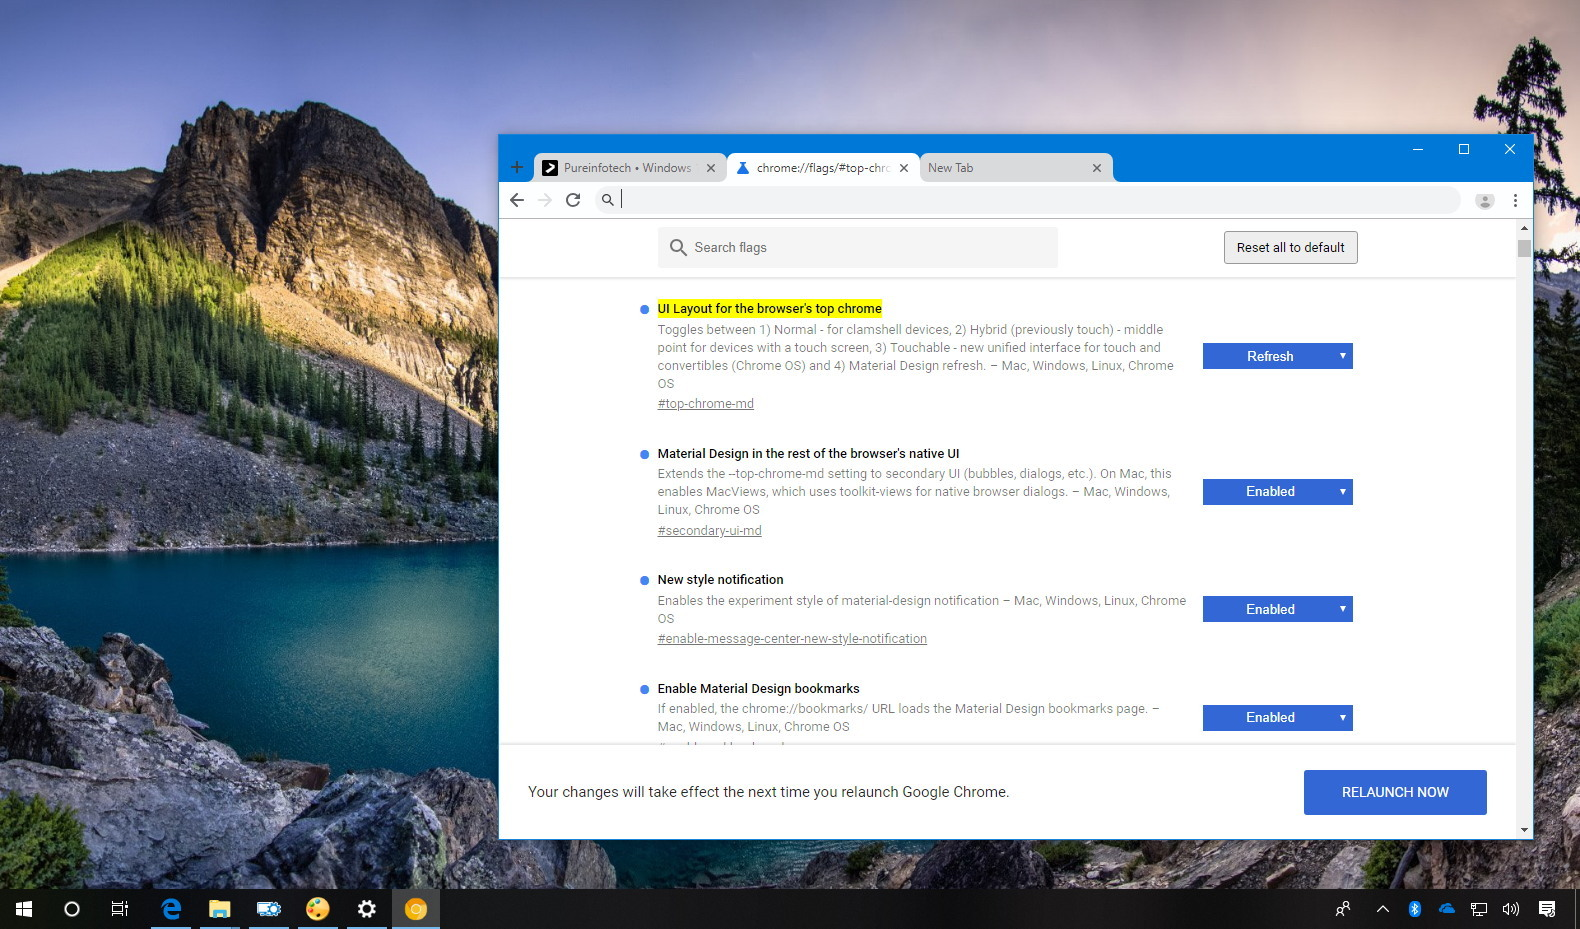 How to enable Google Chrome's Material Design Refresh interface